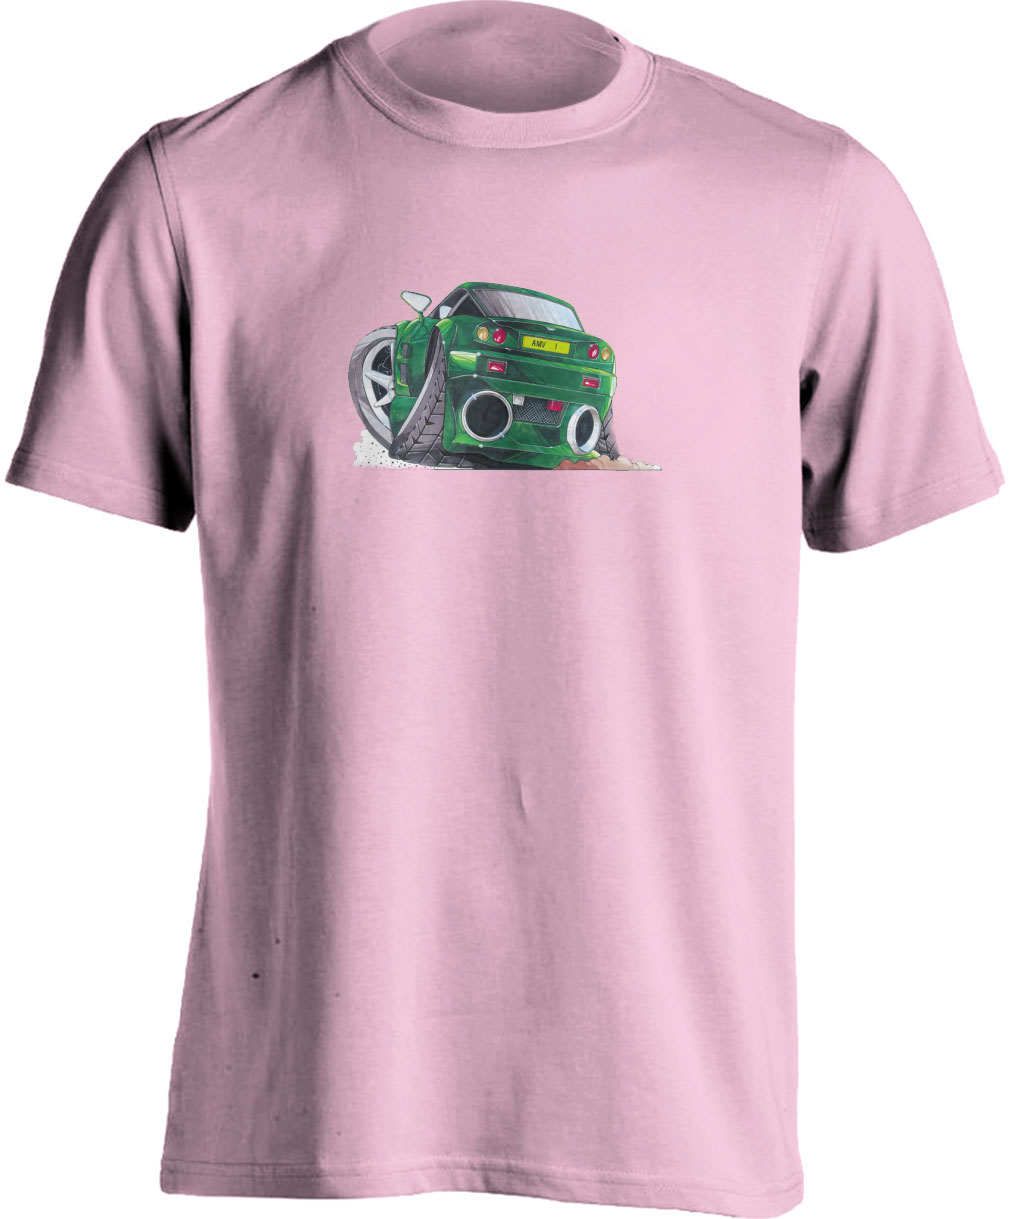 Koolart Aston Martin Vantage Green 1184 Child's T Shirt